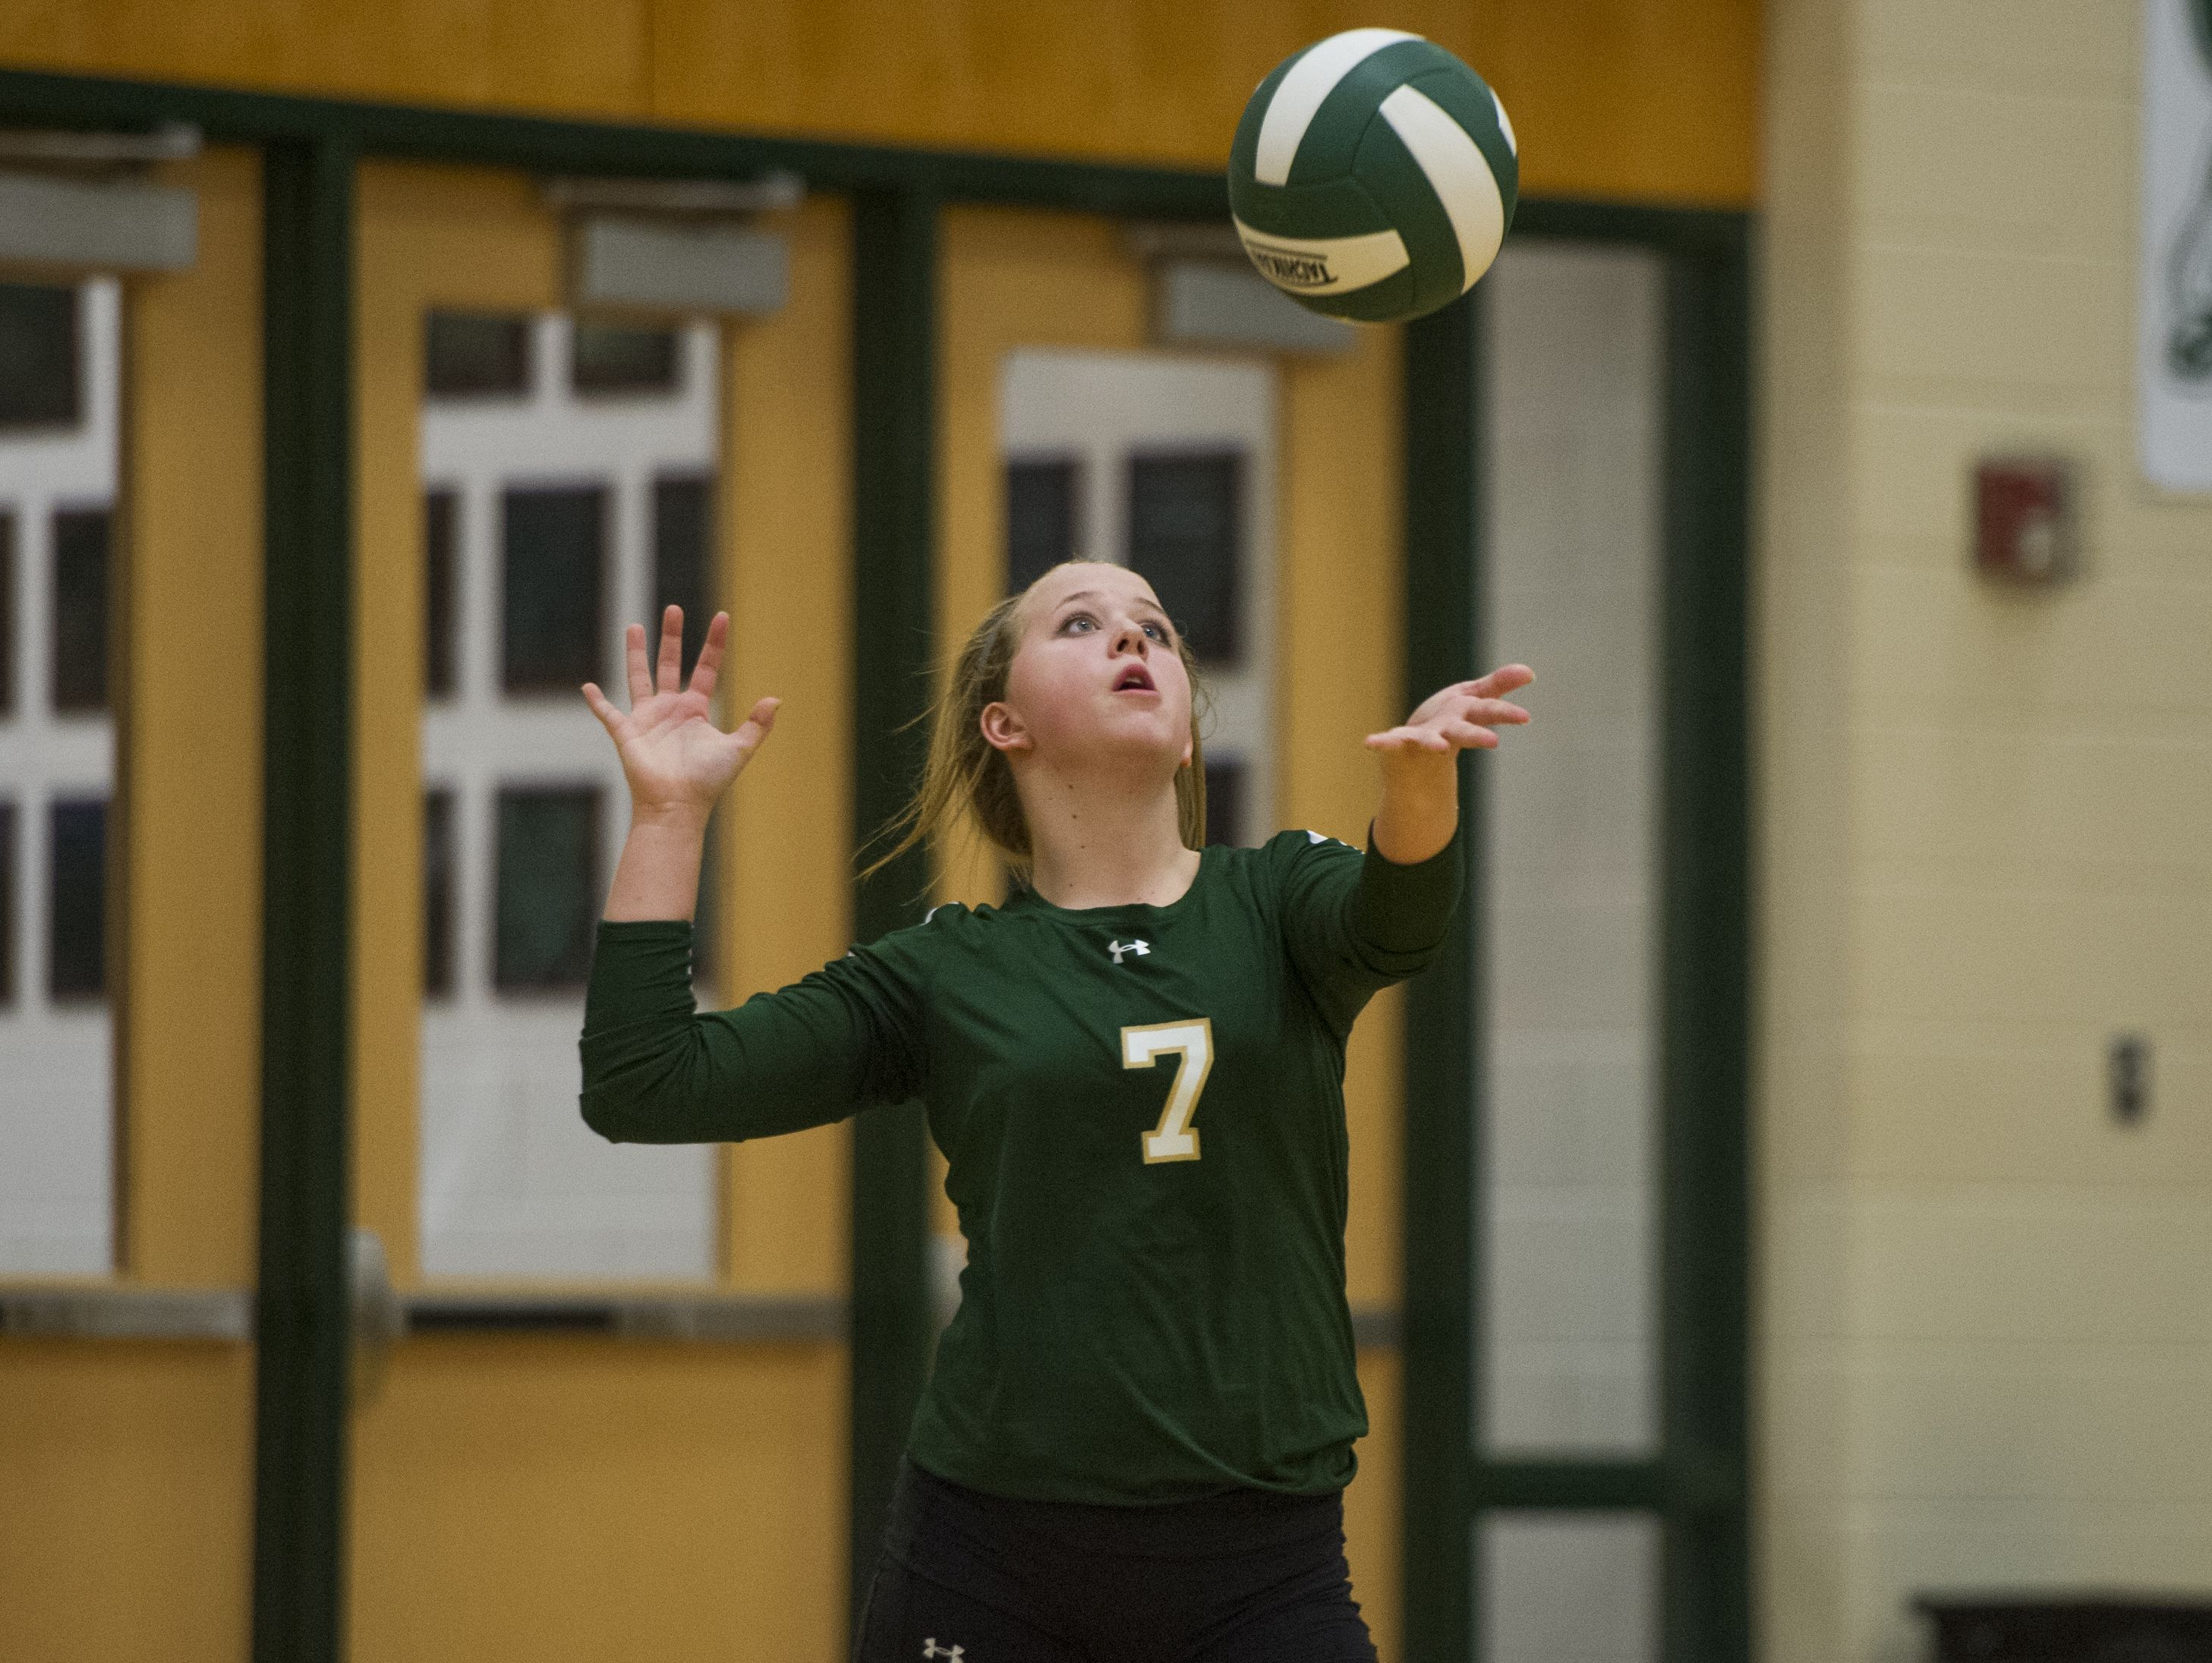 Wilson Memorial's Peyton Sykes serves against East Rockingham during their Conference 36 volleyball game on Monday, Nov. 2, 2015.